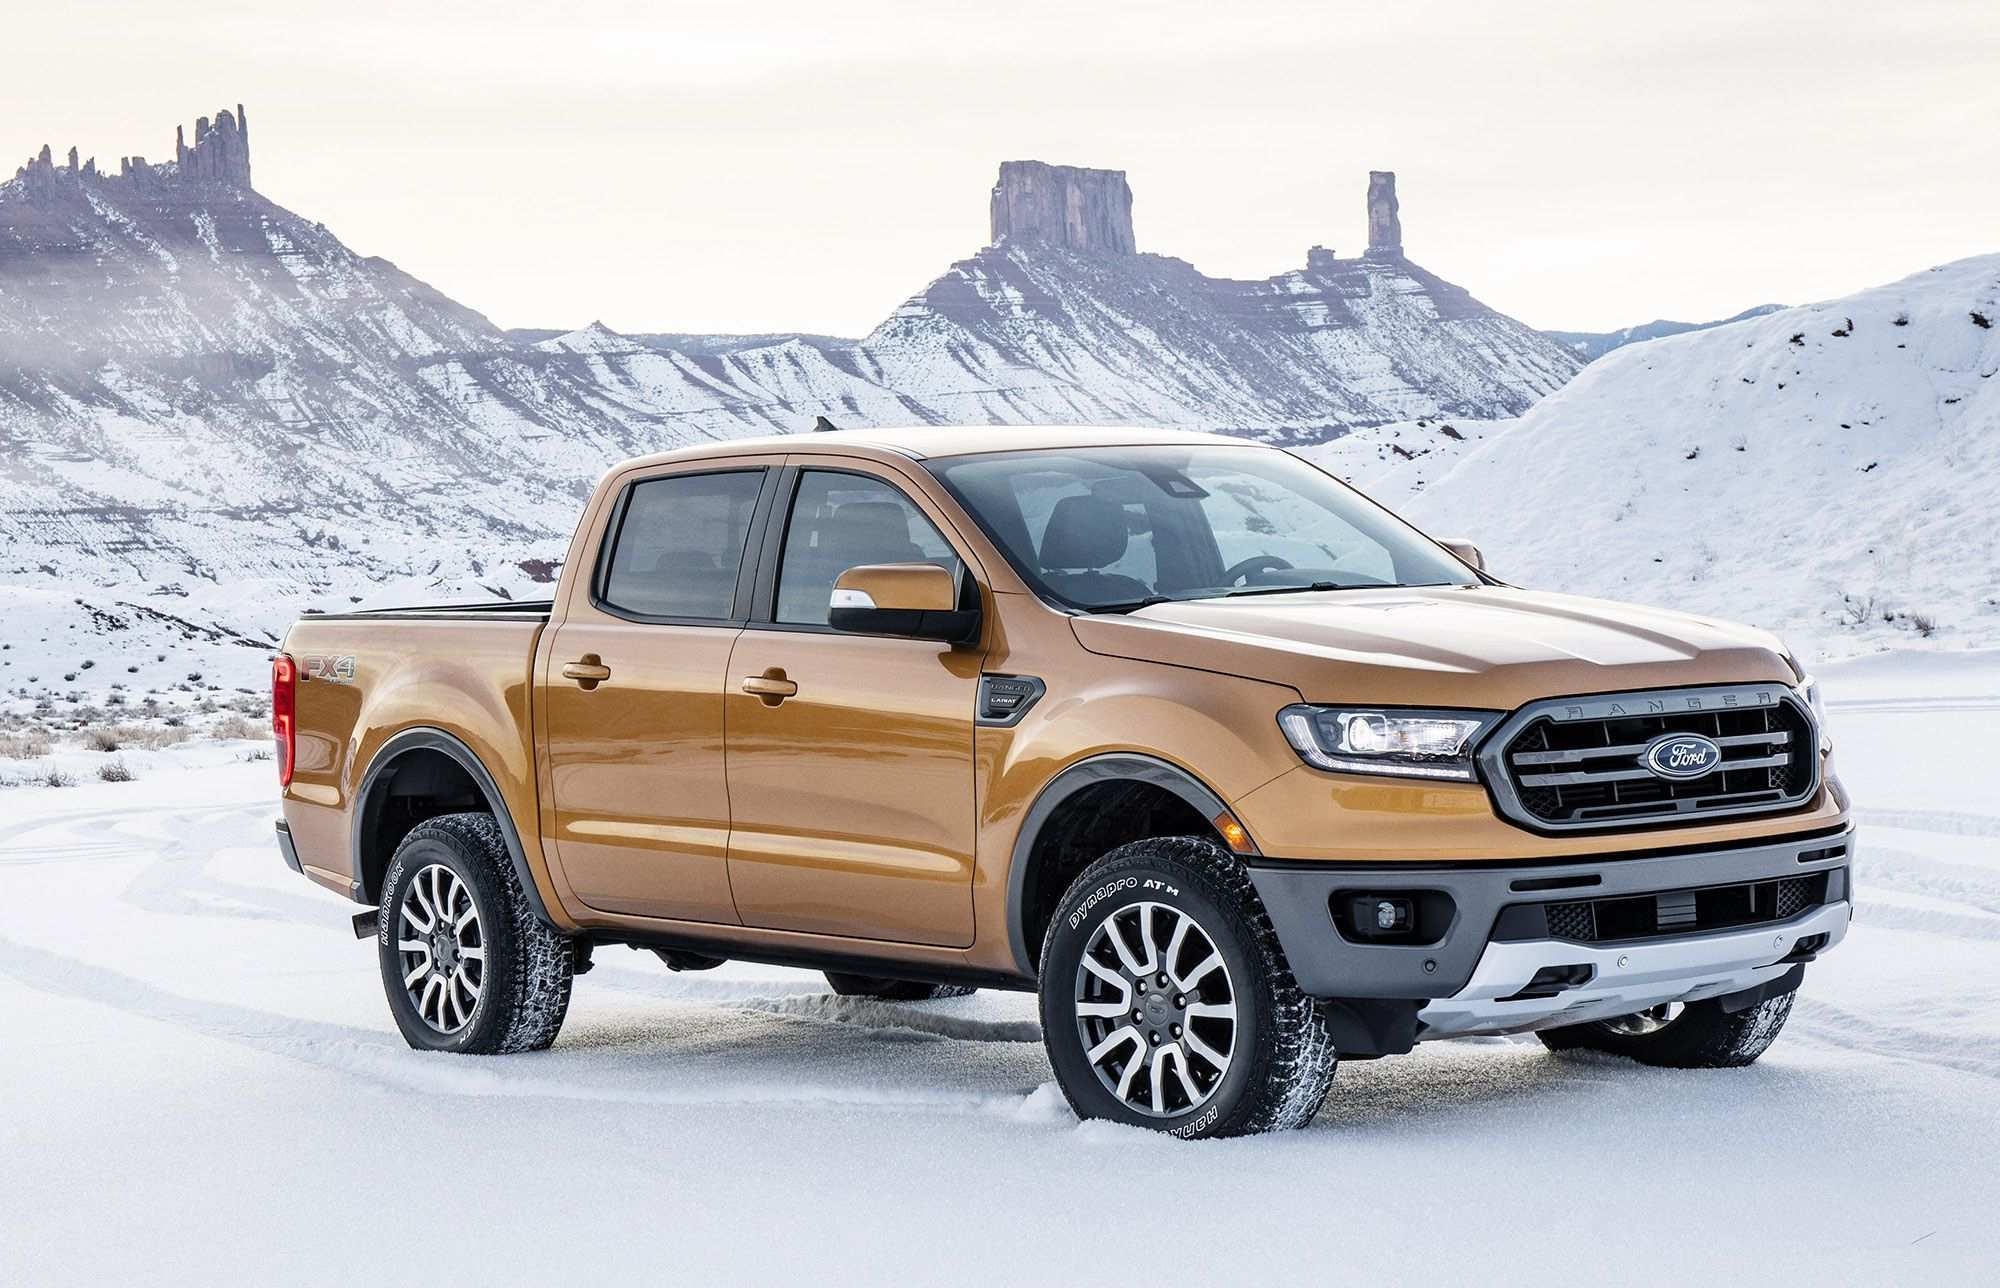 71 All New Subaru Pickup Truck 2019 Review And Release Date